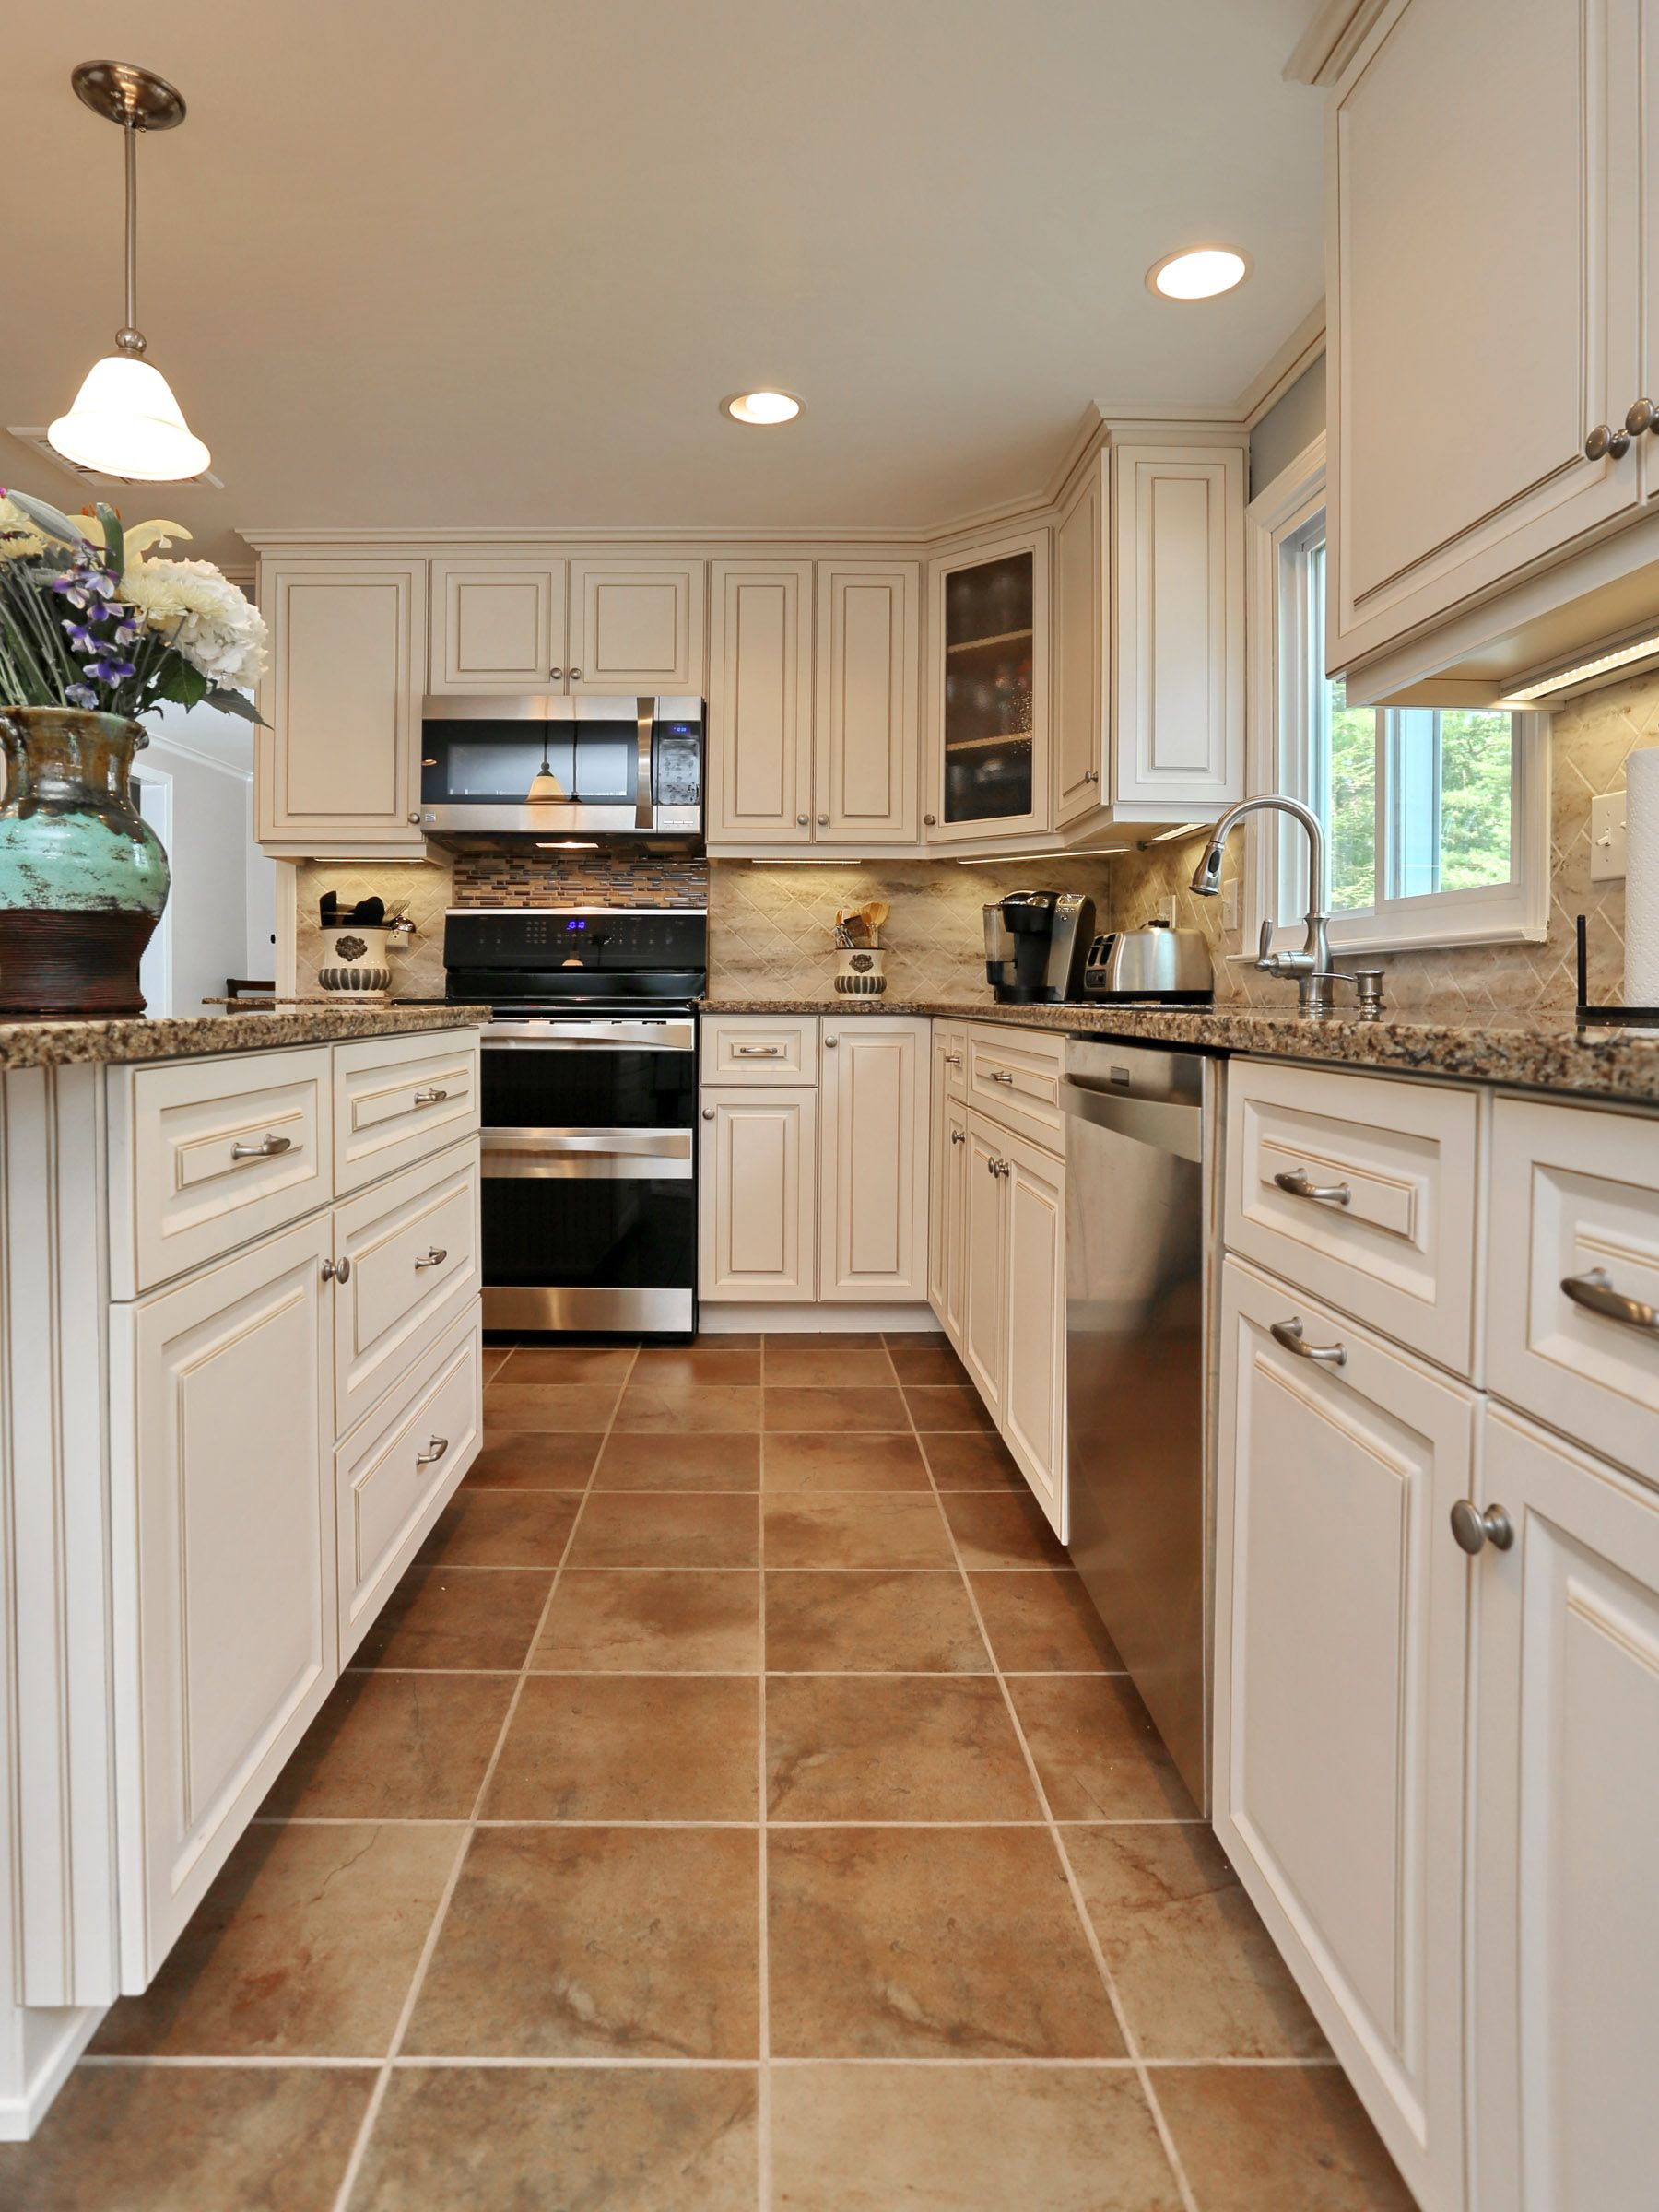 Have You Ever Seen A Canterbury Kitchen Antique White Kitchen